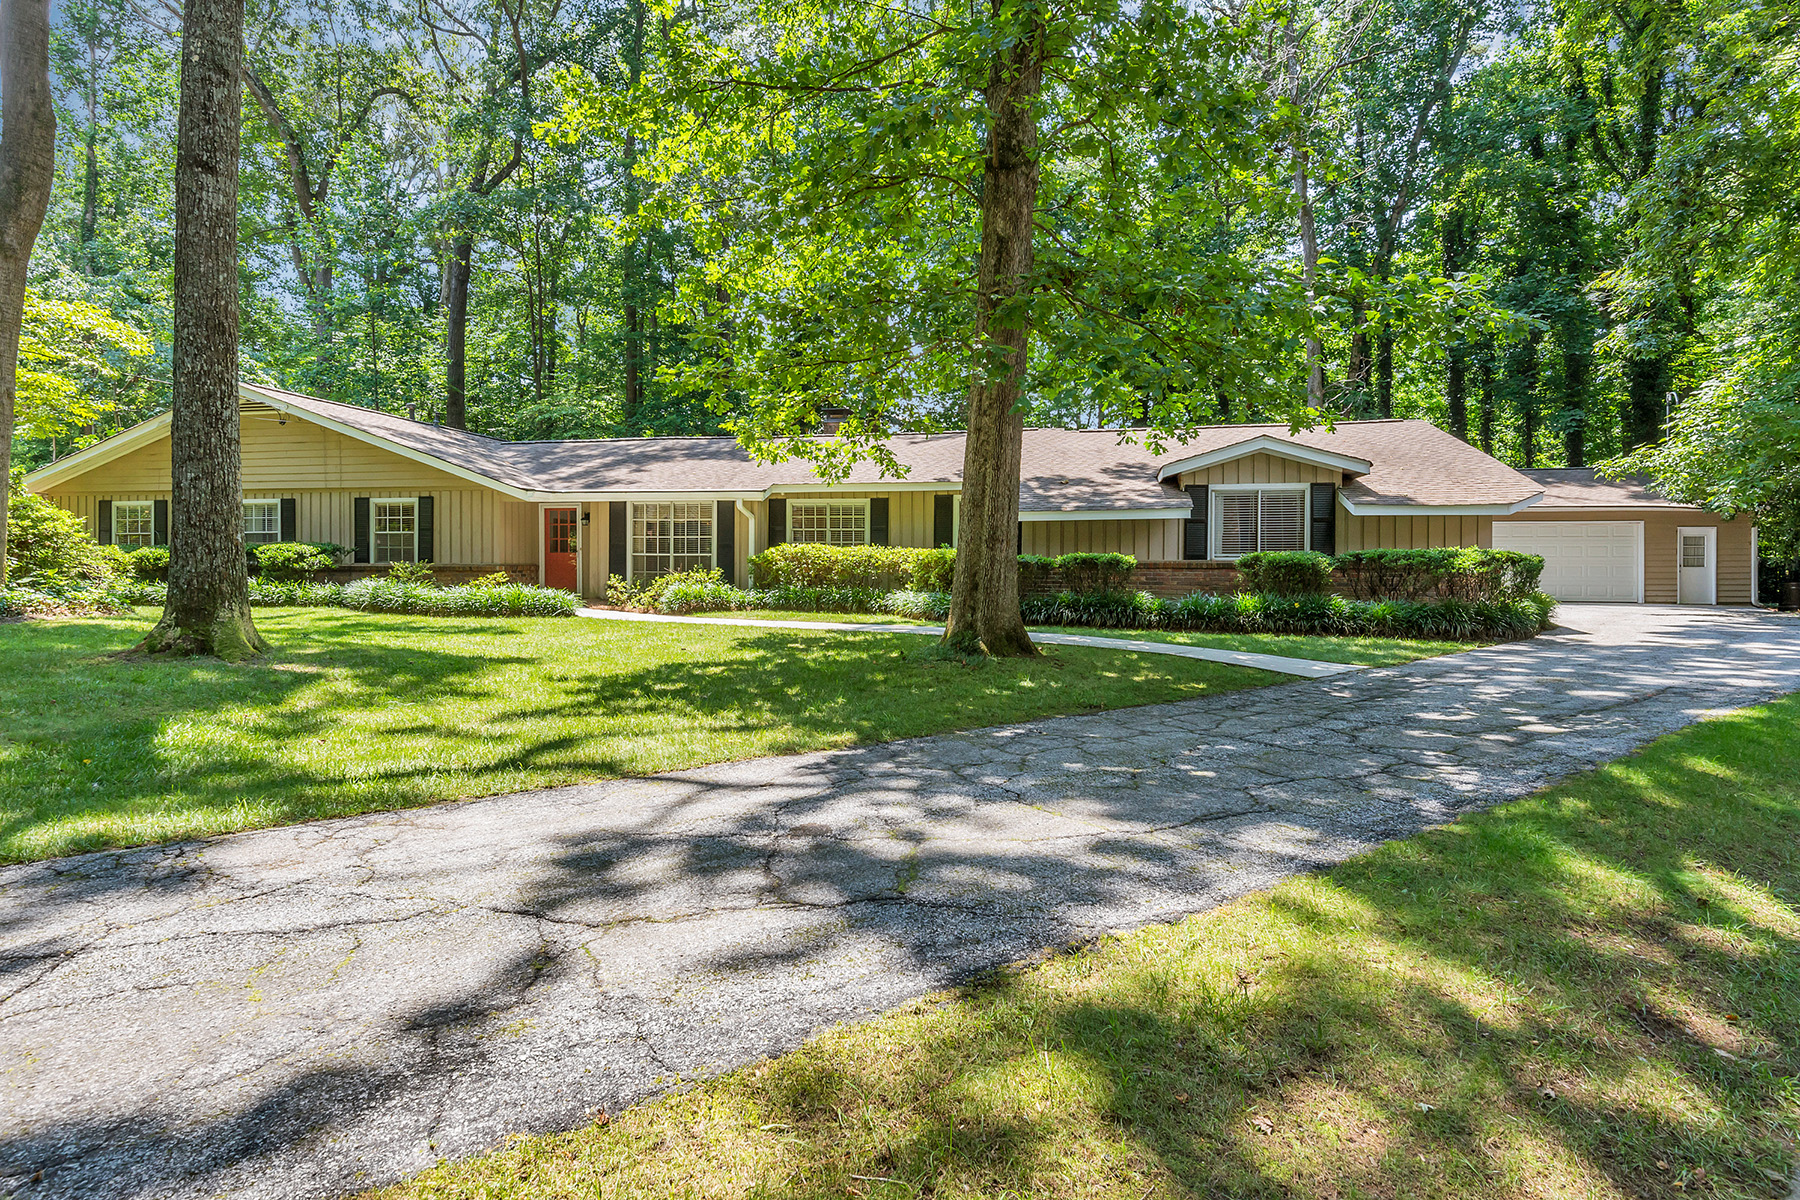 Single Family Home for Sale at Renovated Ranch In The Heart Of Dunwoody 2210 Prestwood Court Dunwoody, Georgia 30338 United States